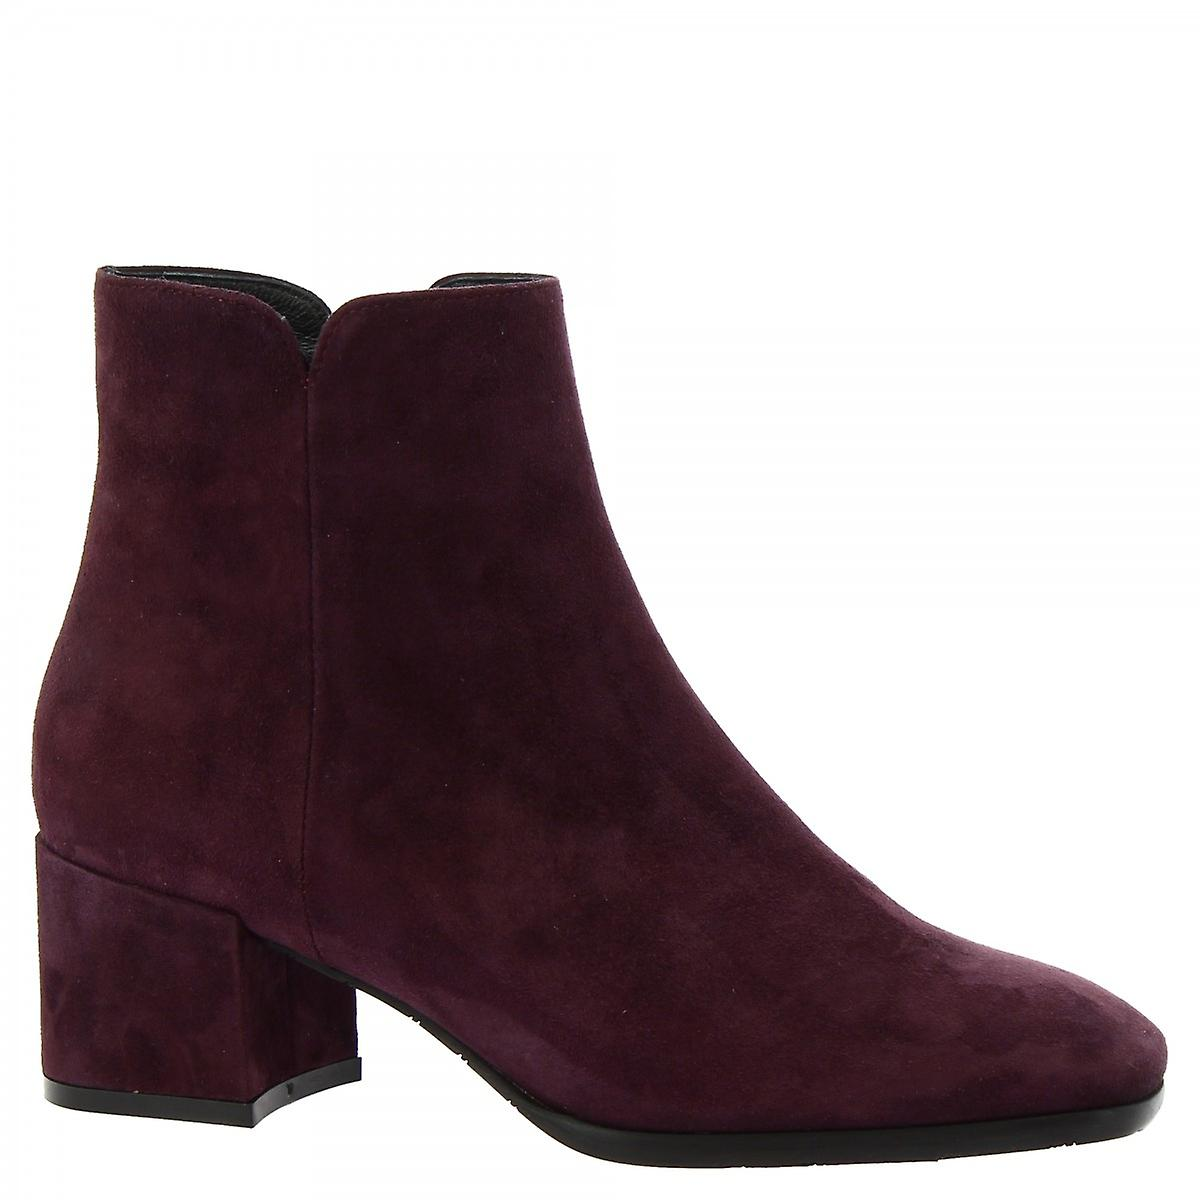 Leonardo Shoes Women's handmade heels ankle boots in plum suede leather side zip G216c